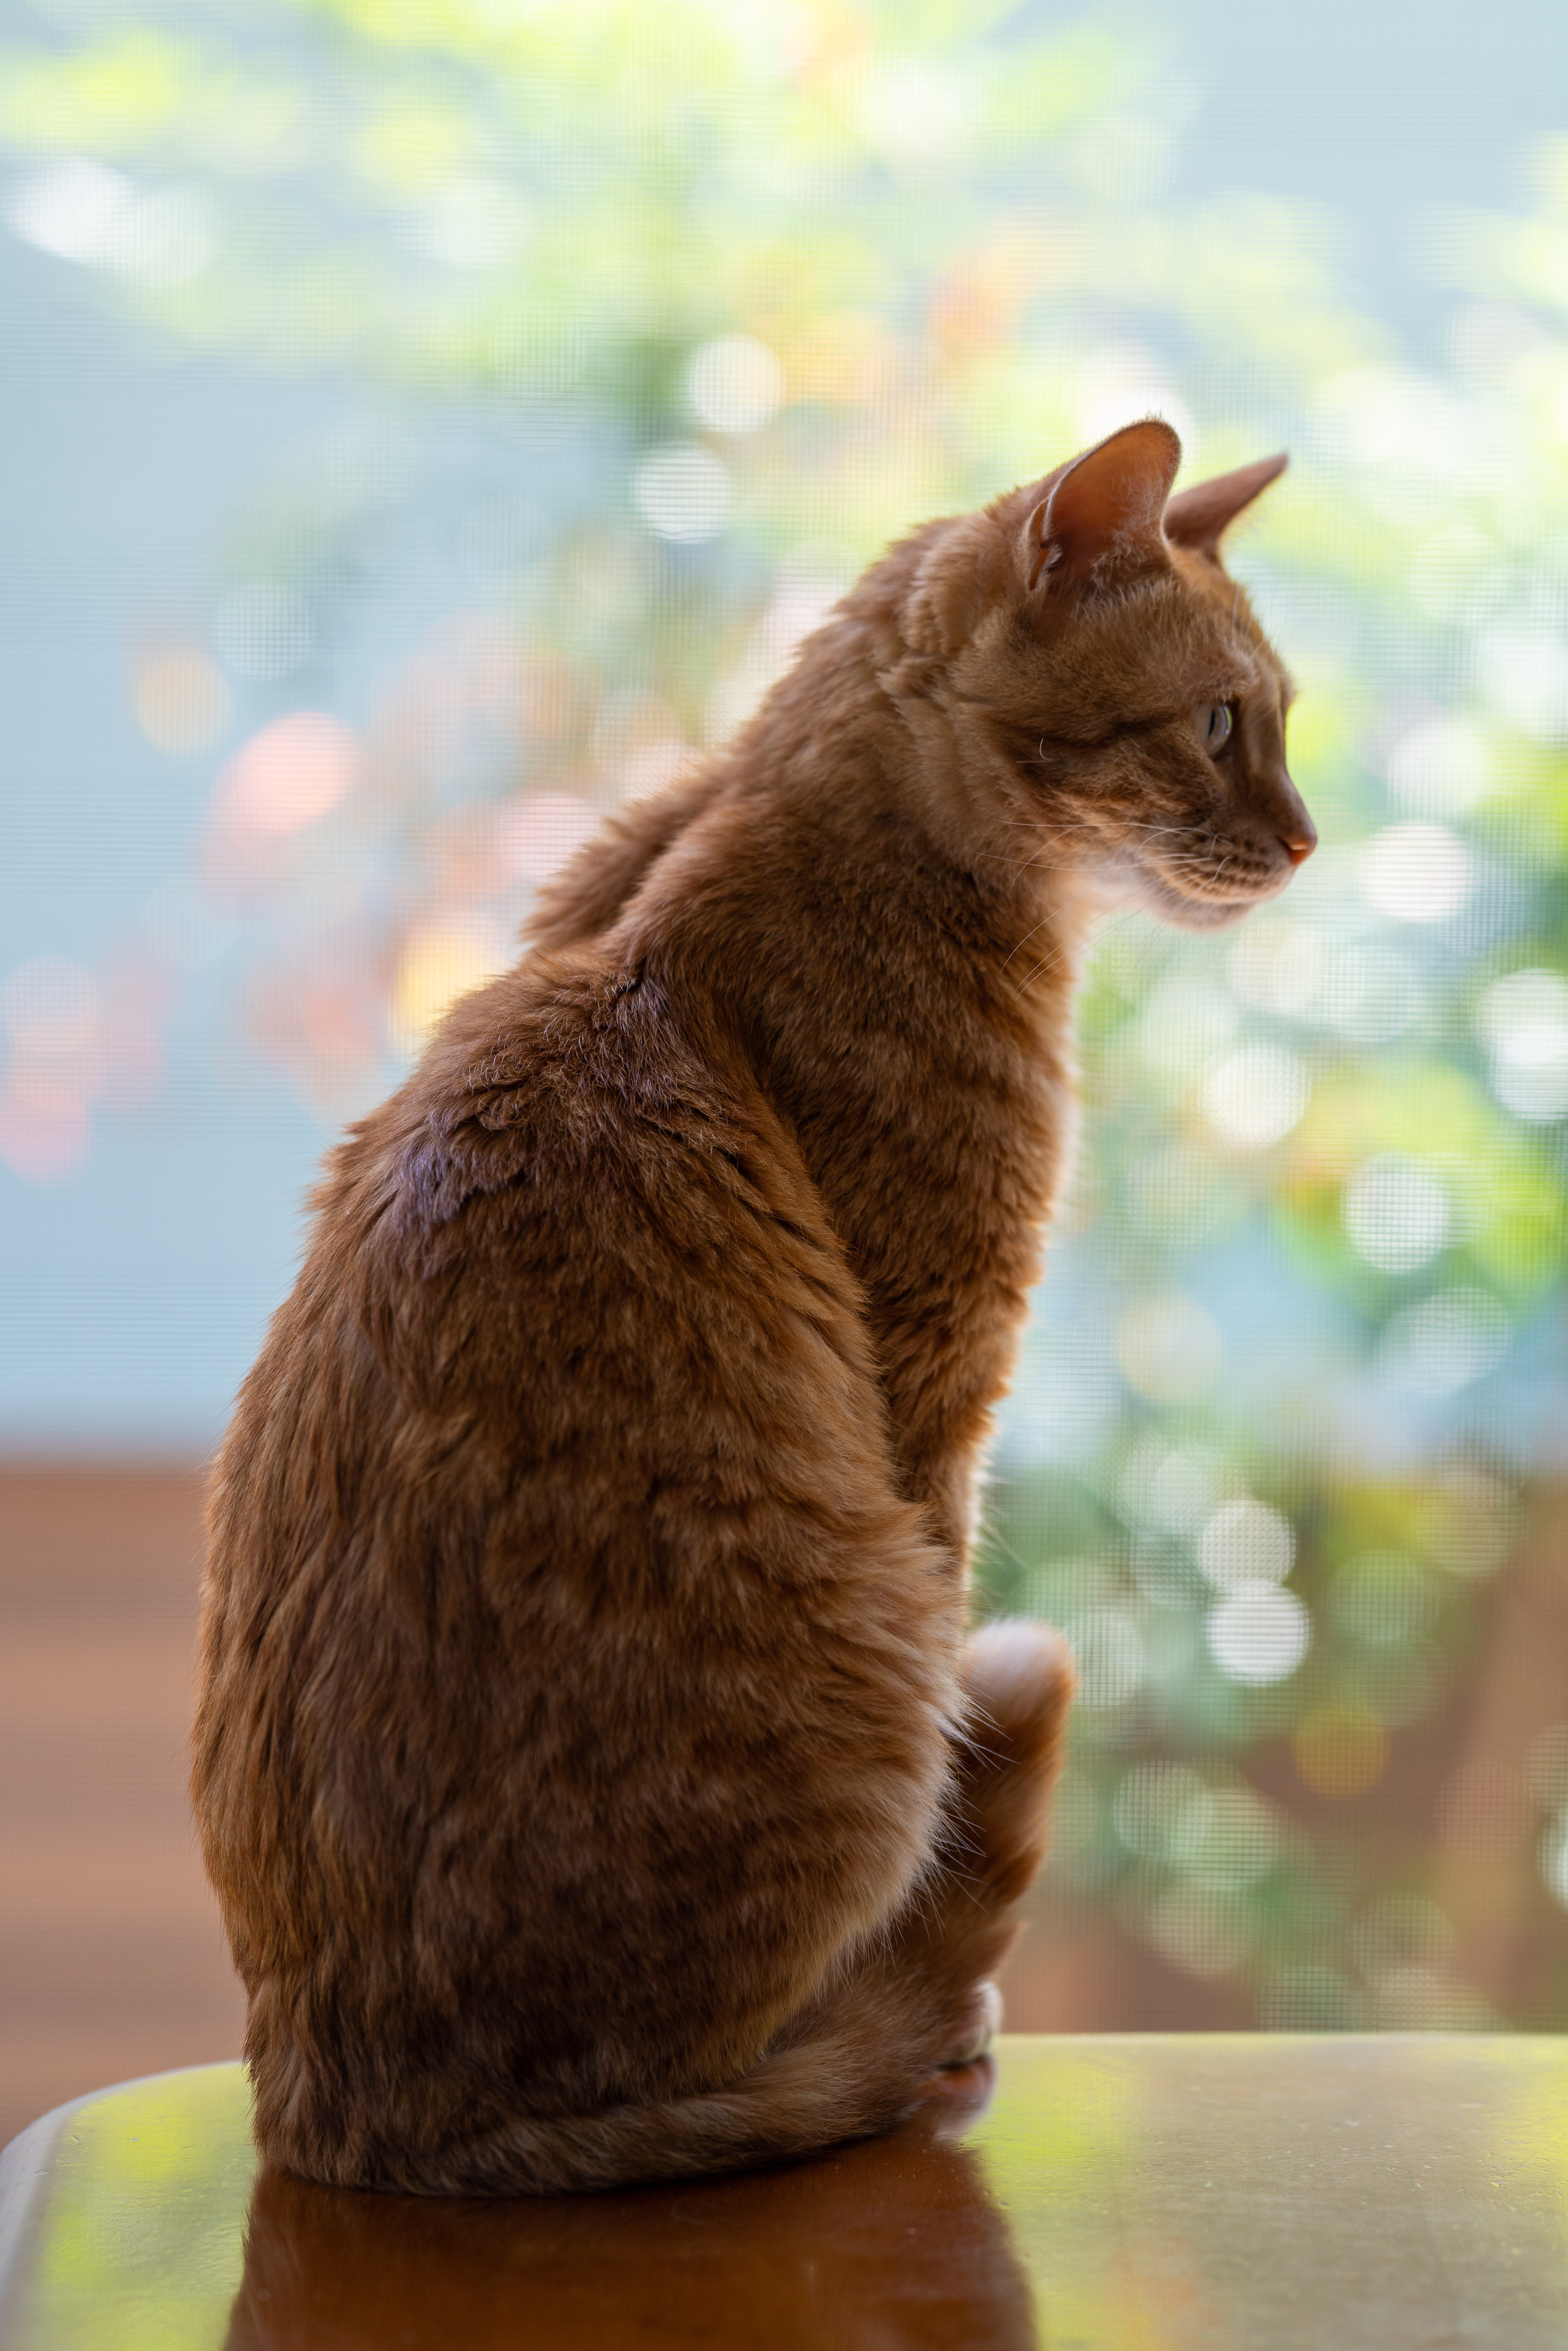 77465 download wallpaper Animals, Cat, Pet, Profile, Redhead screensavers and pictures for free